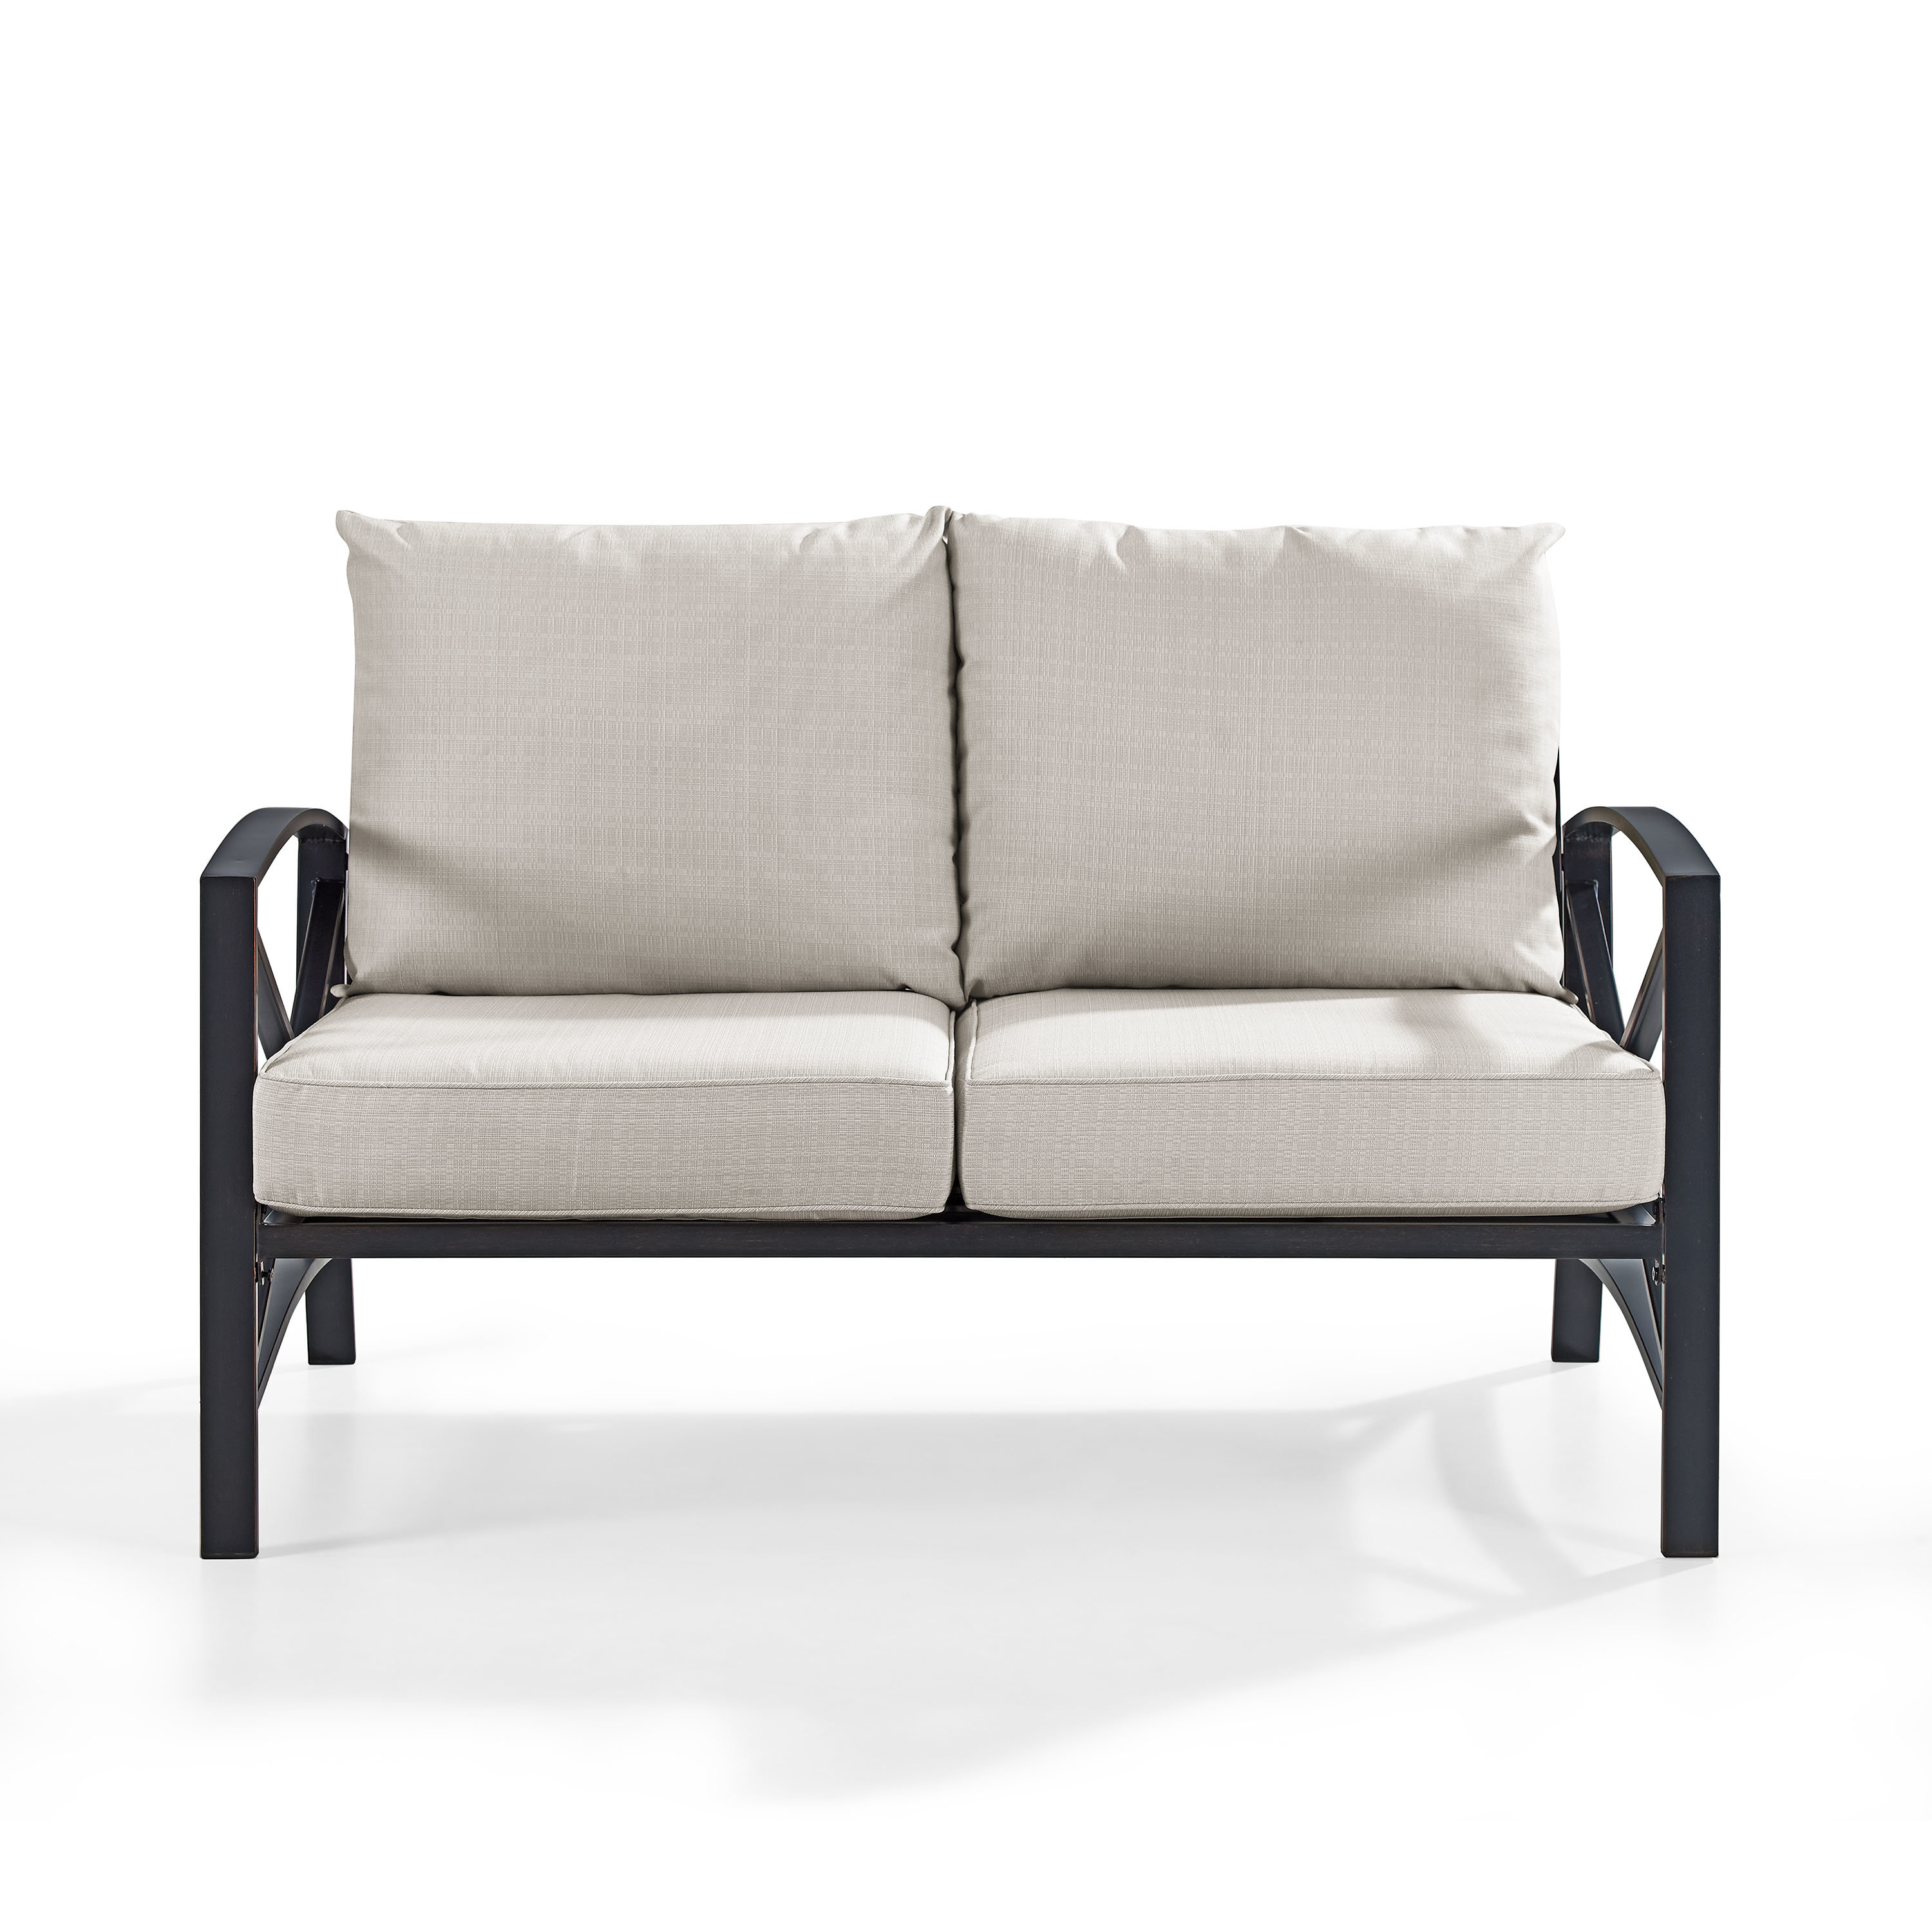 Bullock Outdoor Wooden Loveseats With Cushions In Most Up To Date Modern Grey Outdoor Loveseats (View 5 of 20)